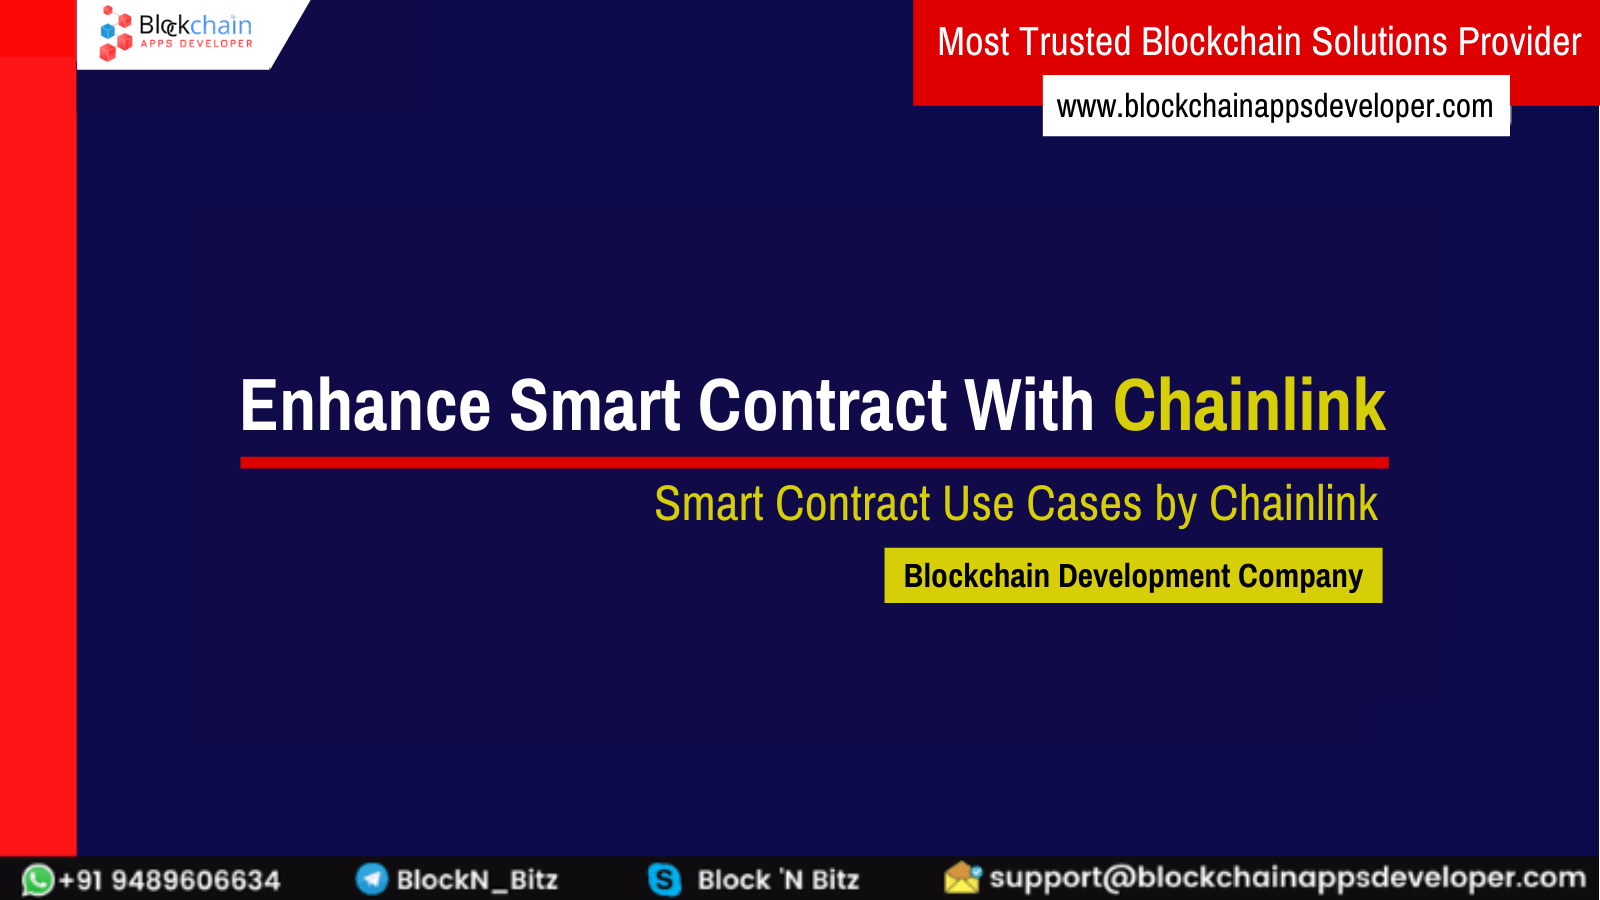 77 Smart Contract Use Cases Enabled By Chainlink - A Complete Guide 2021